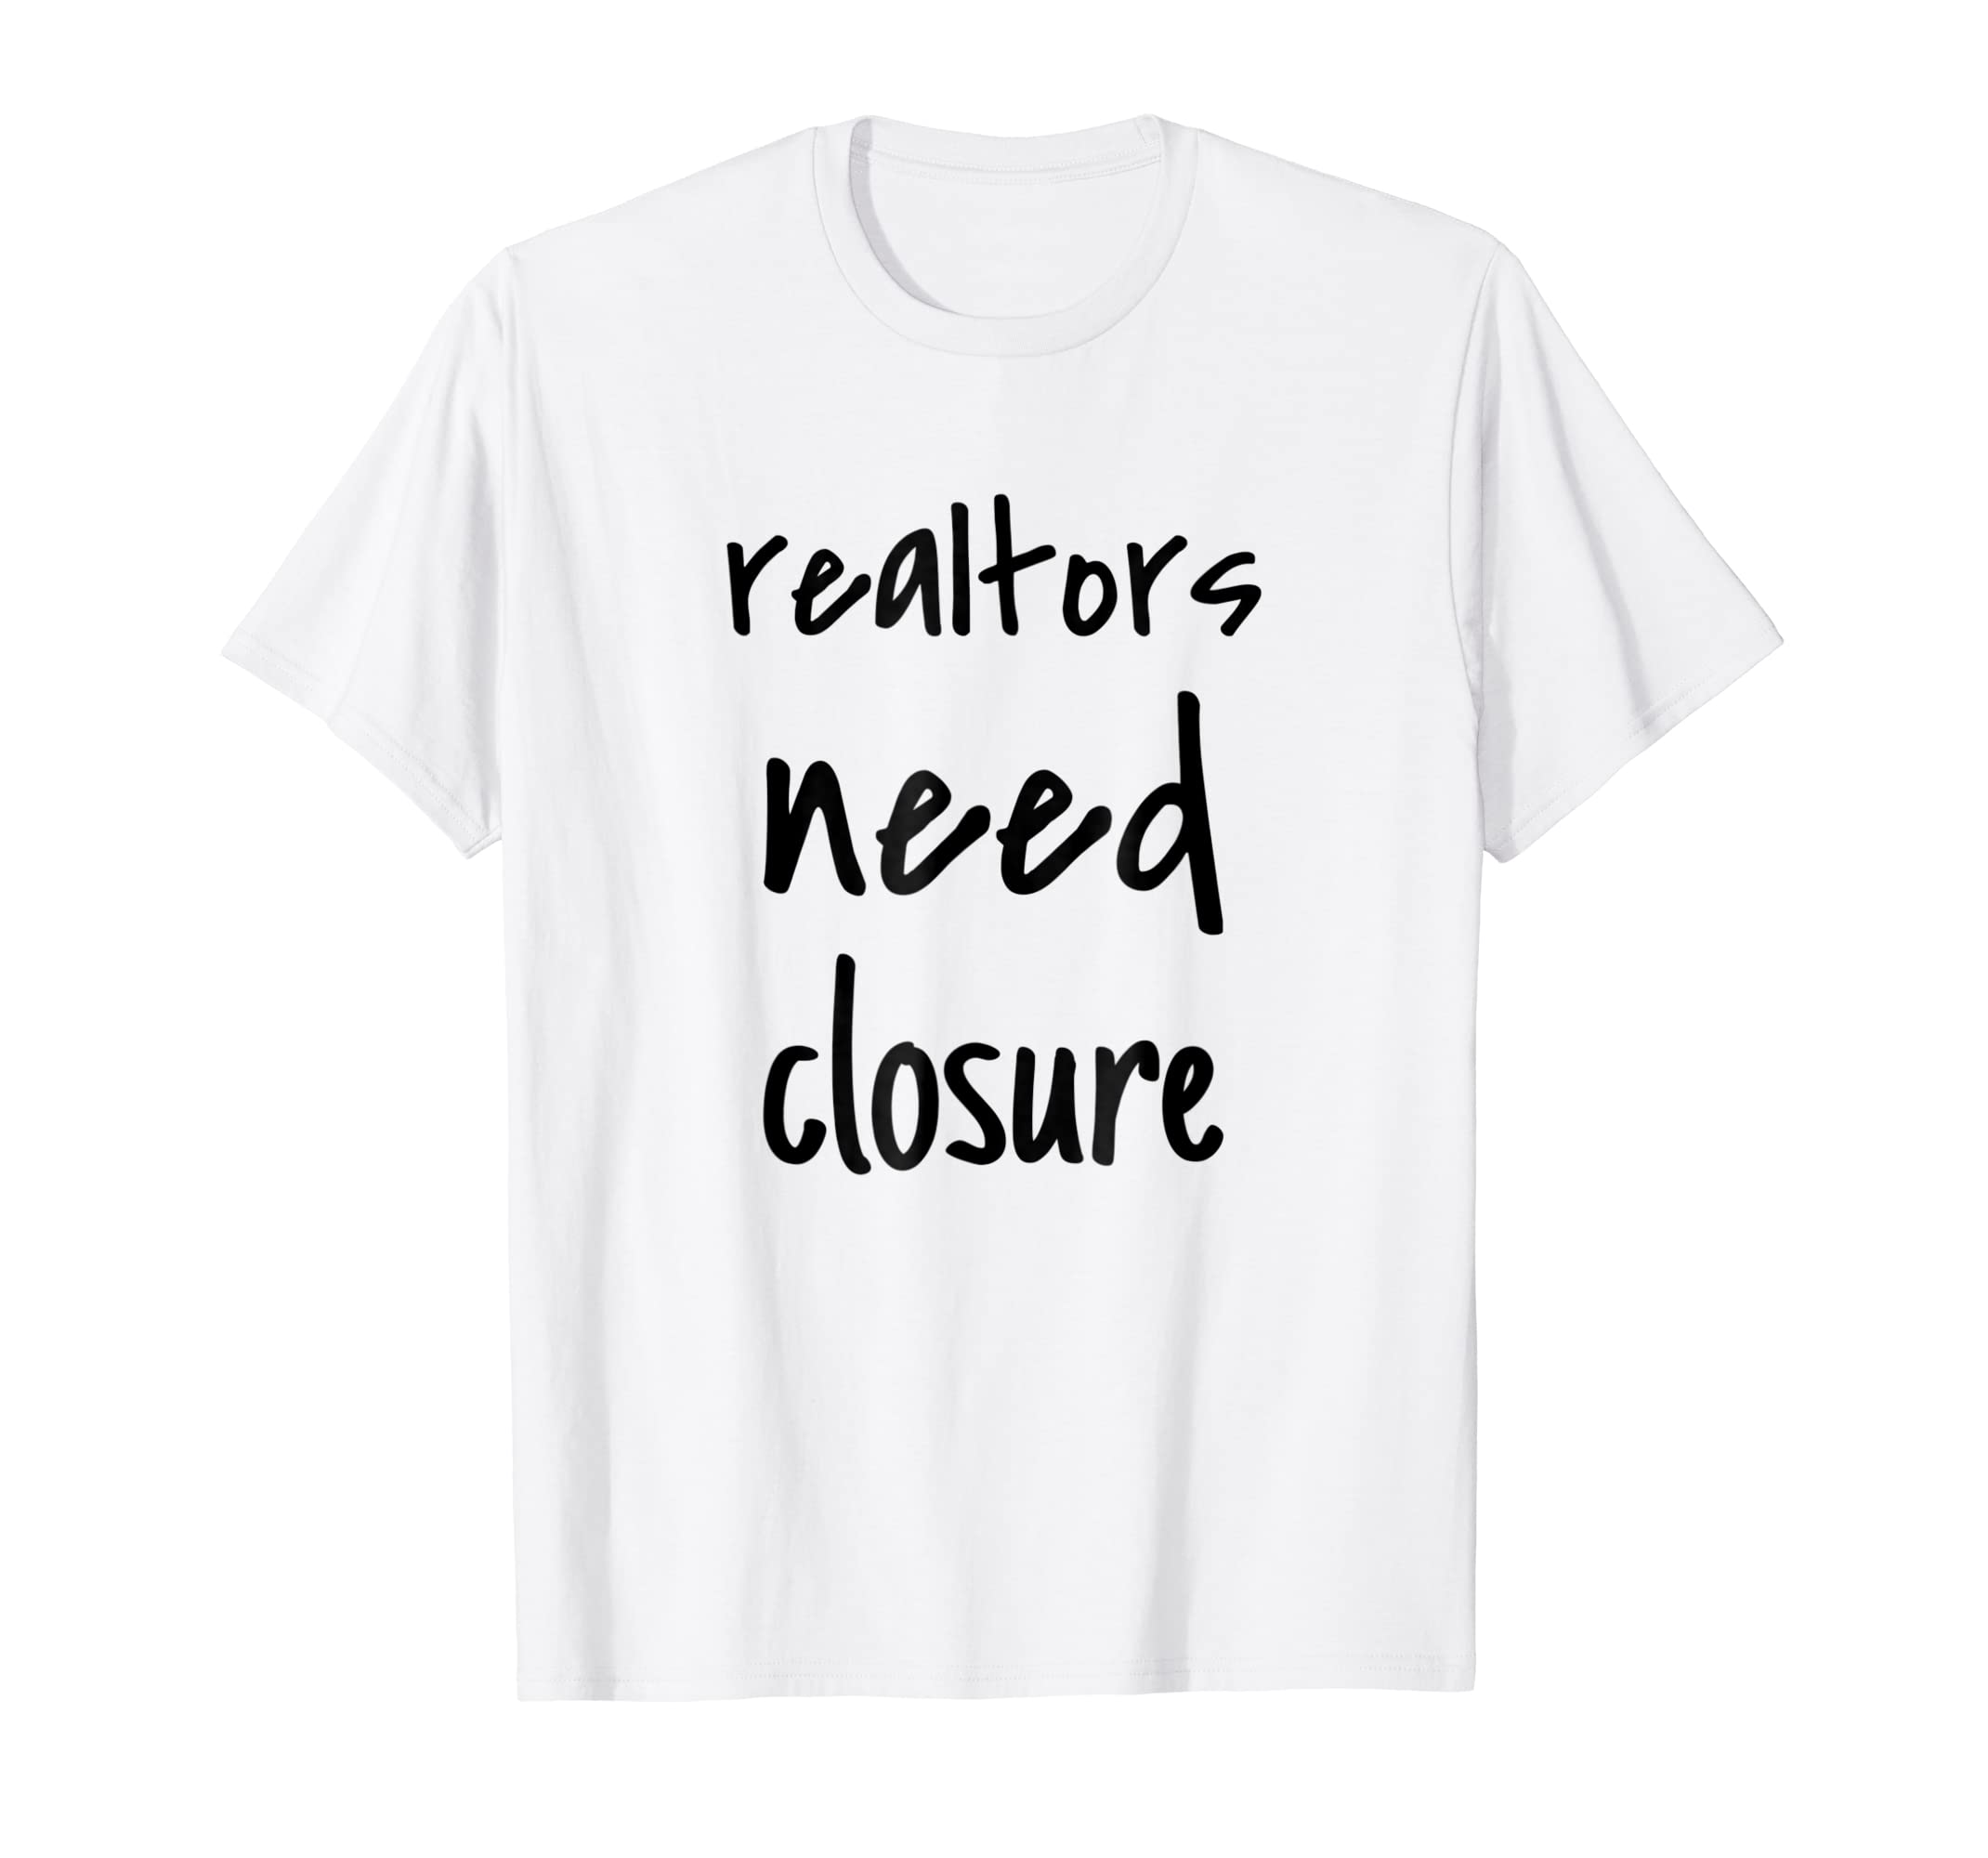 bb0826ea3 Amazon.com: Realtors Need Closure | Funny Realtor Shirts | Realtor Shirt:  Clothing